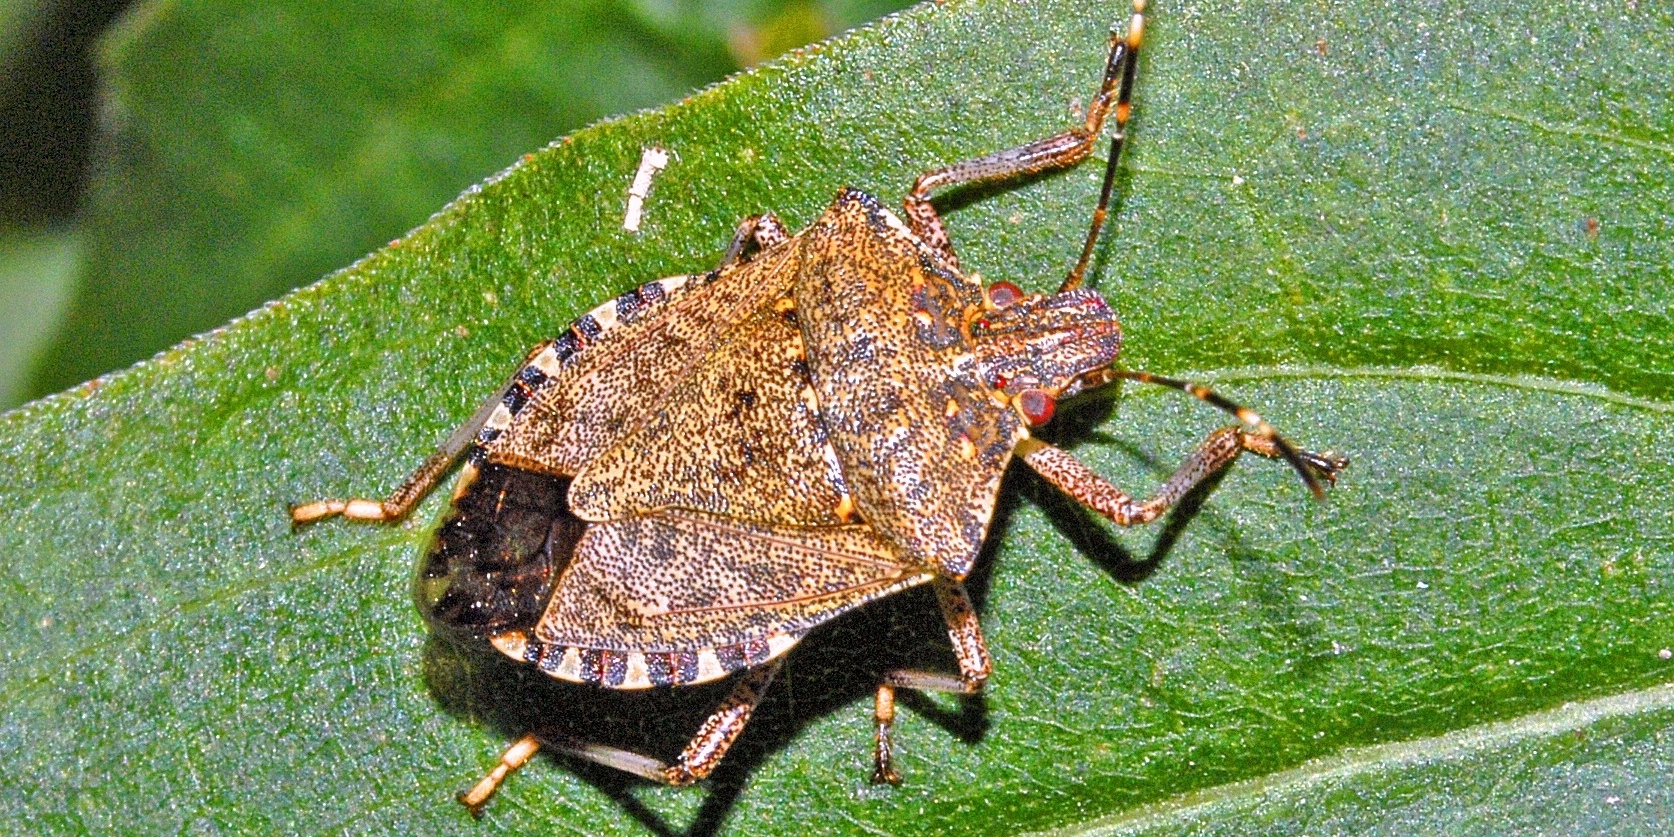 Stink Bug is another tick look-alike